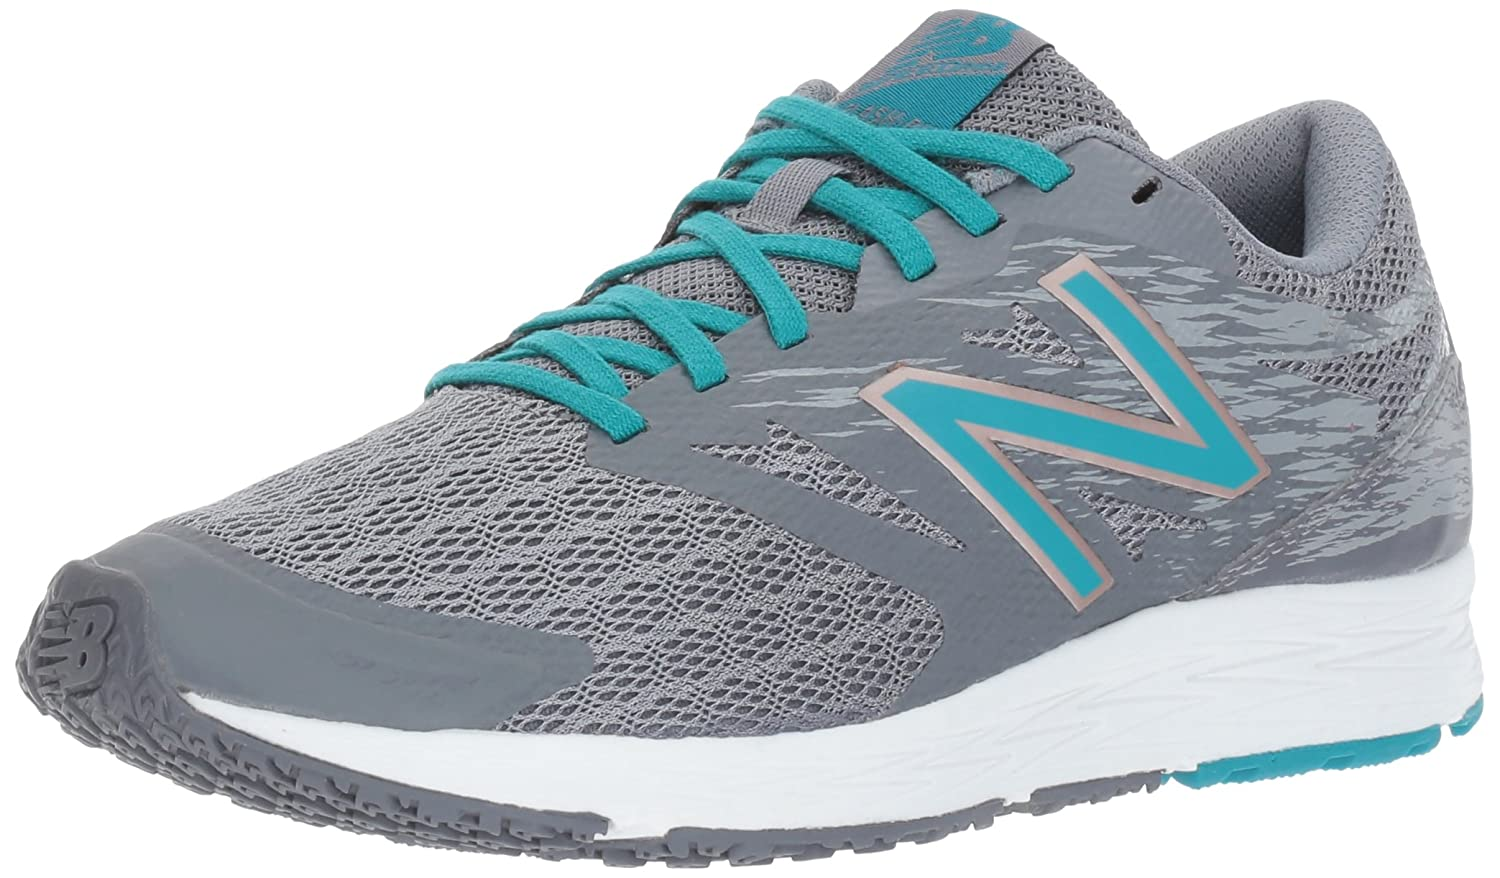 New Balance Women's Flash V1 Running Shoe B01MQLRX13 5.5 B(M) US|Gunmetal/Pisces